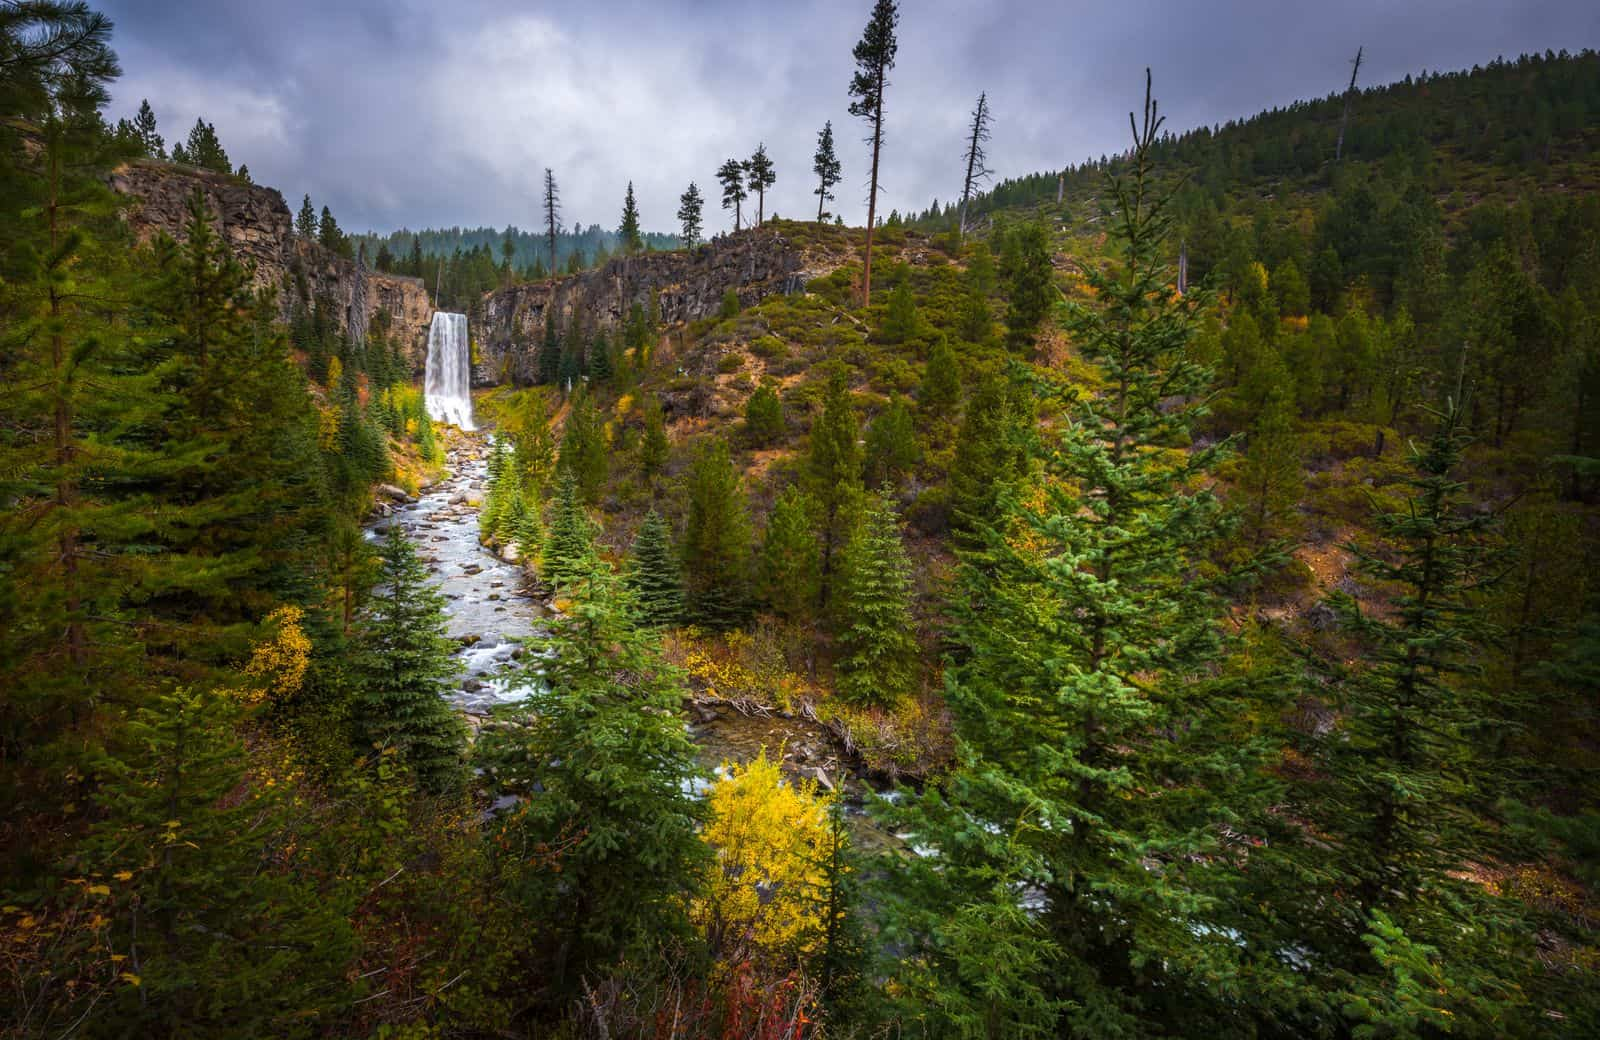 Tumalo Falls is a beautiful waterfall near Bend, Oregon.